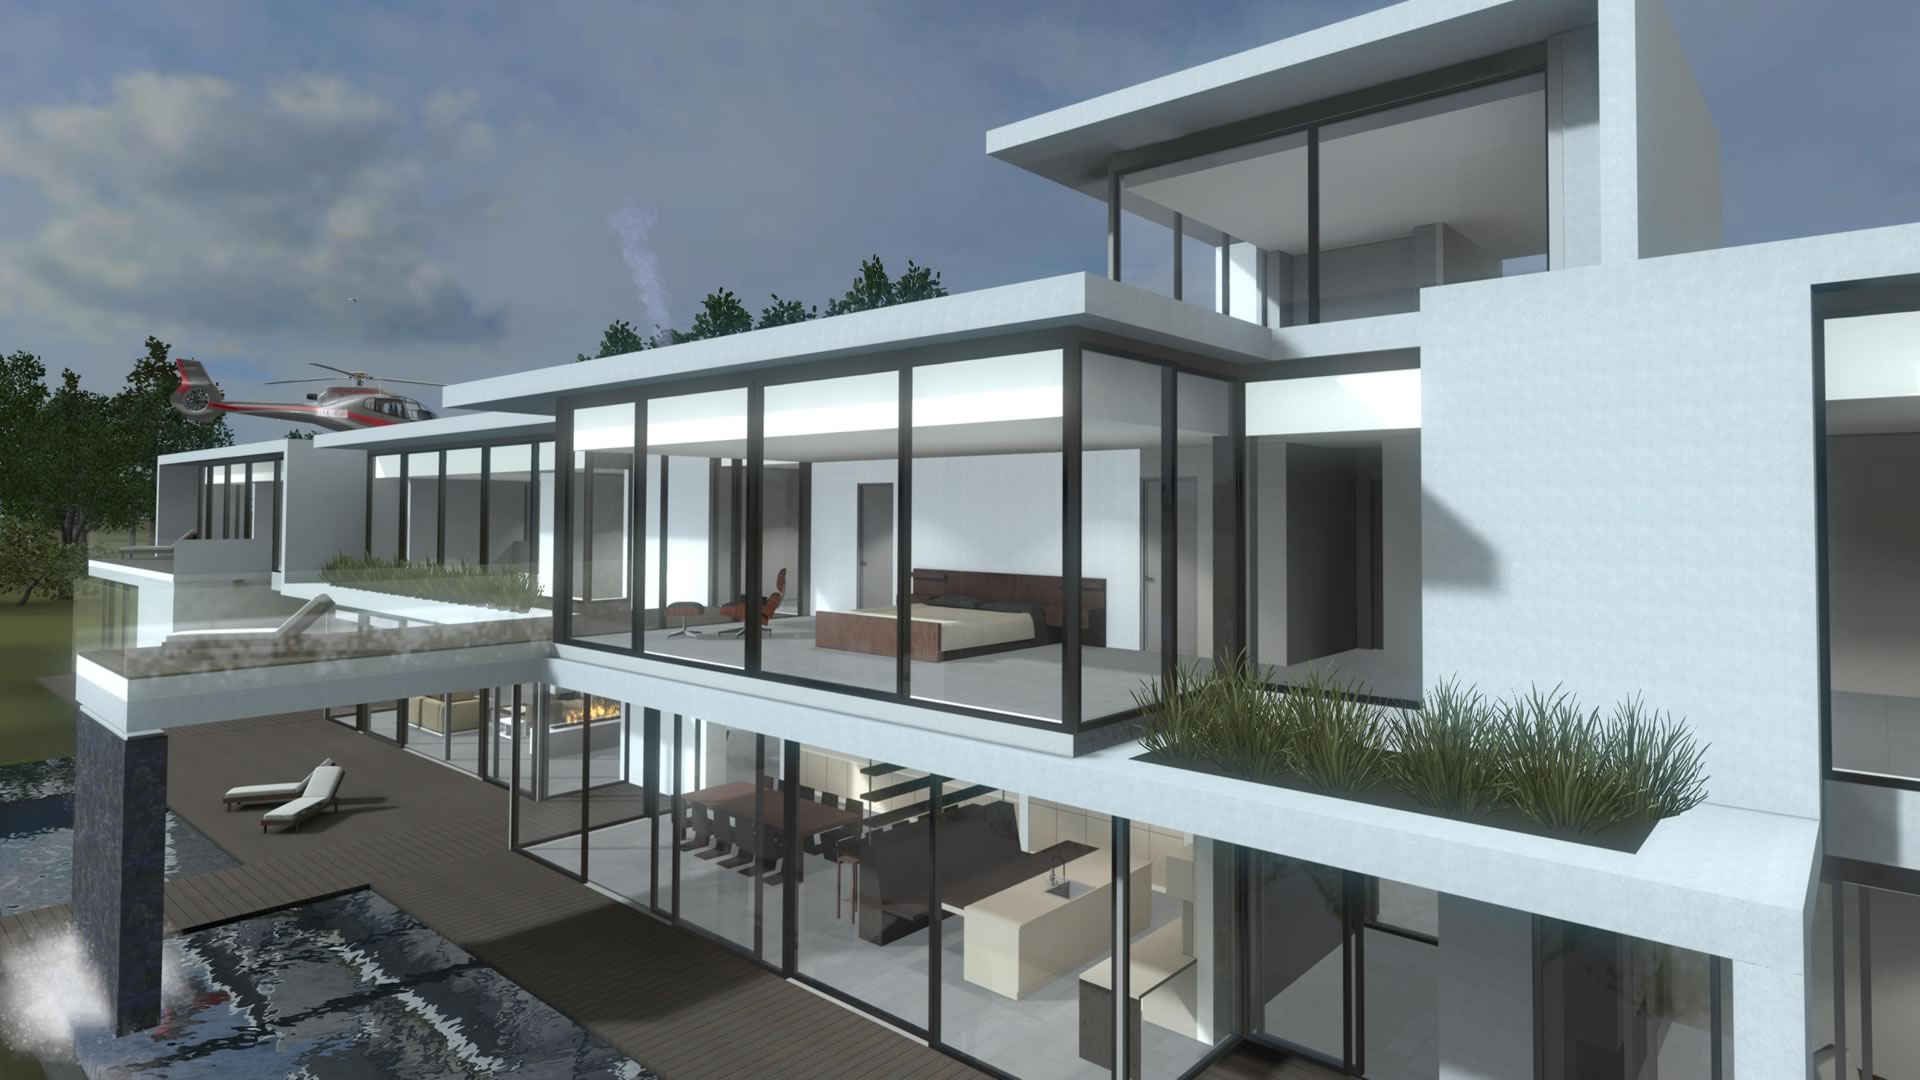 Oculus Rift Architectural Visualization Residential 2